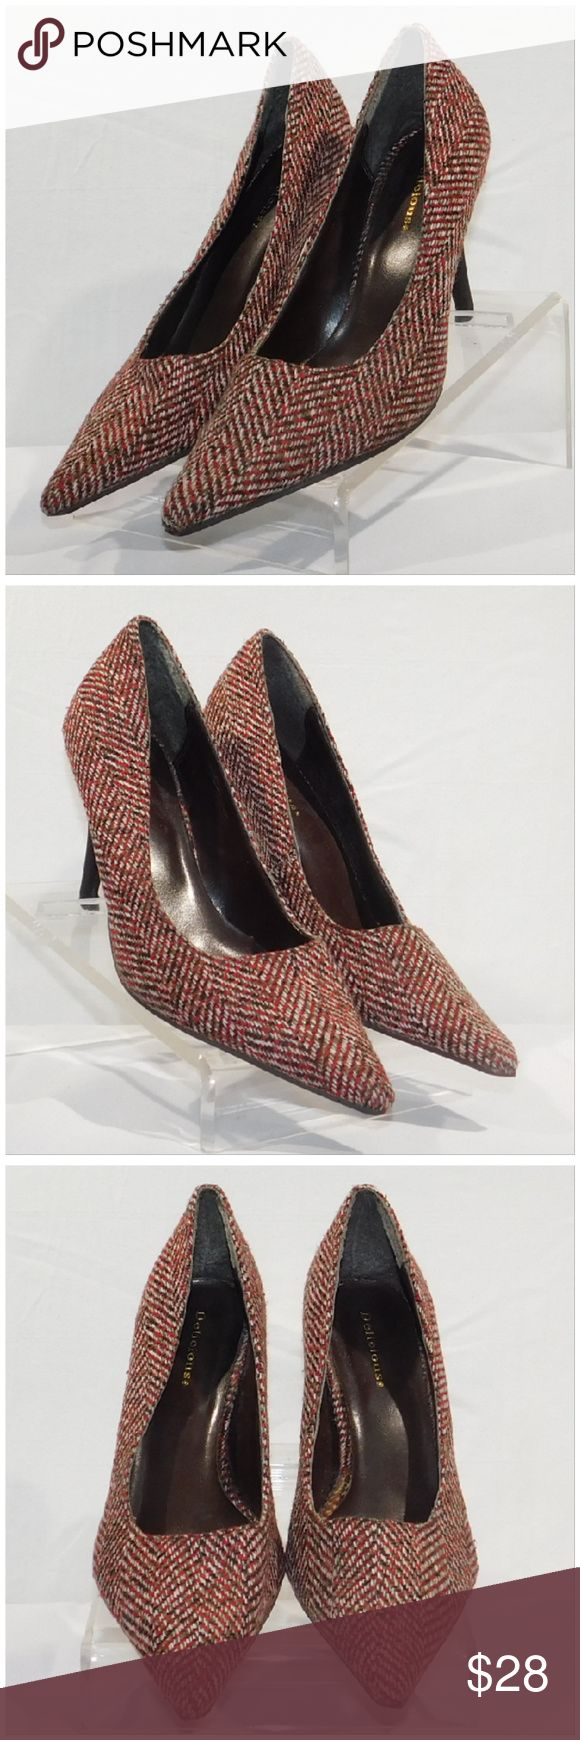 Offers of 40% Less on BUNDLES Always Accepted! DELICIOUS, Point Toe Pumps, size 8, slightly more on the narrow side than the medium width side, stiletto-type heel, herringbone/houndstooth woven pattern, man-made material. ADD to a BUNDLE! Offers of 40% Less on BUNDLES Always Accepted! Delicious Shoes Heels